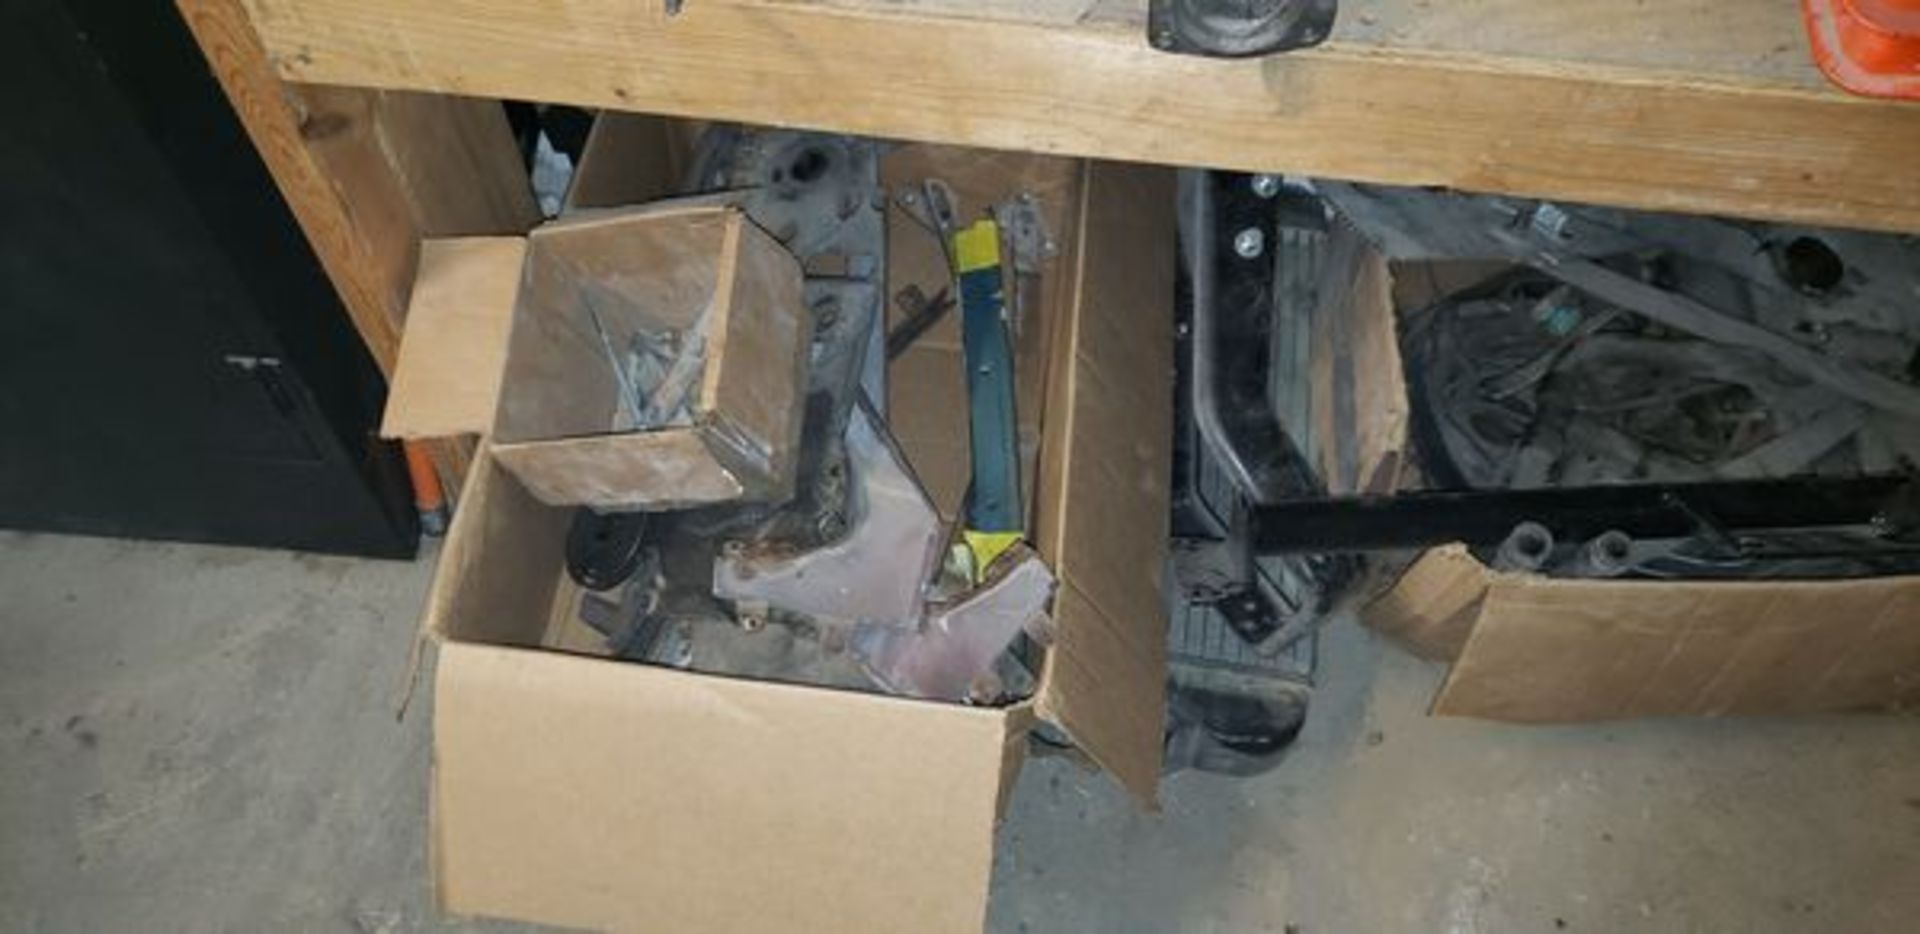 LOT OF ASSORTED CAR PARTS ON 3 SHELVES AND FLOOR - Image 12 of 12